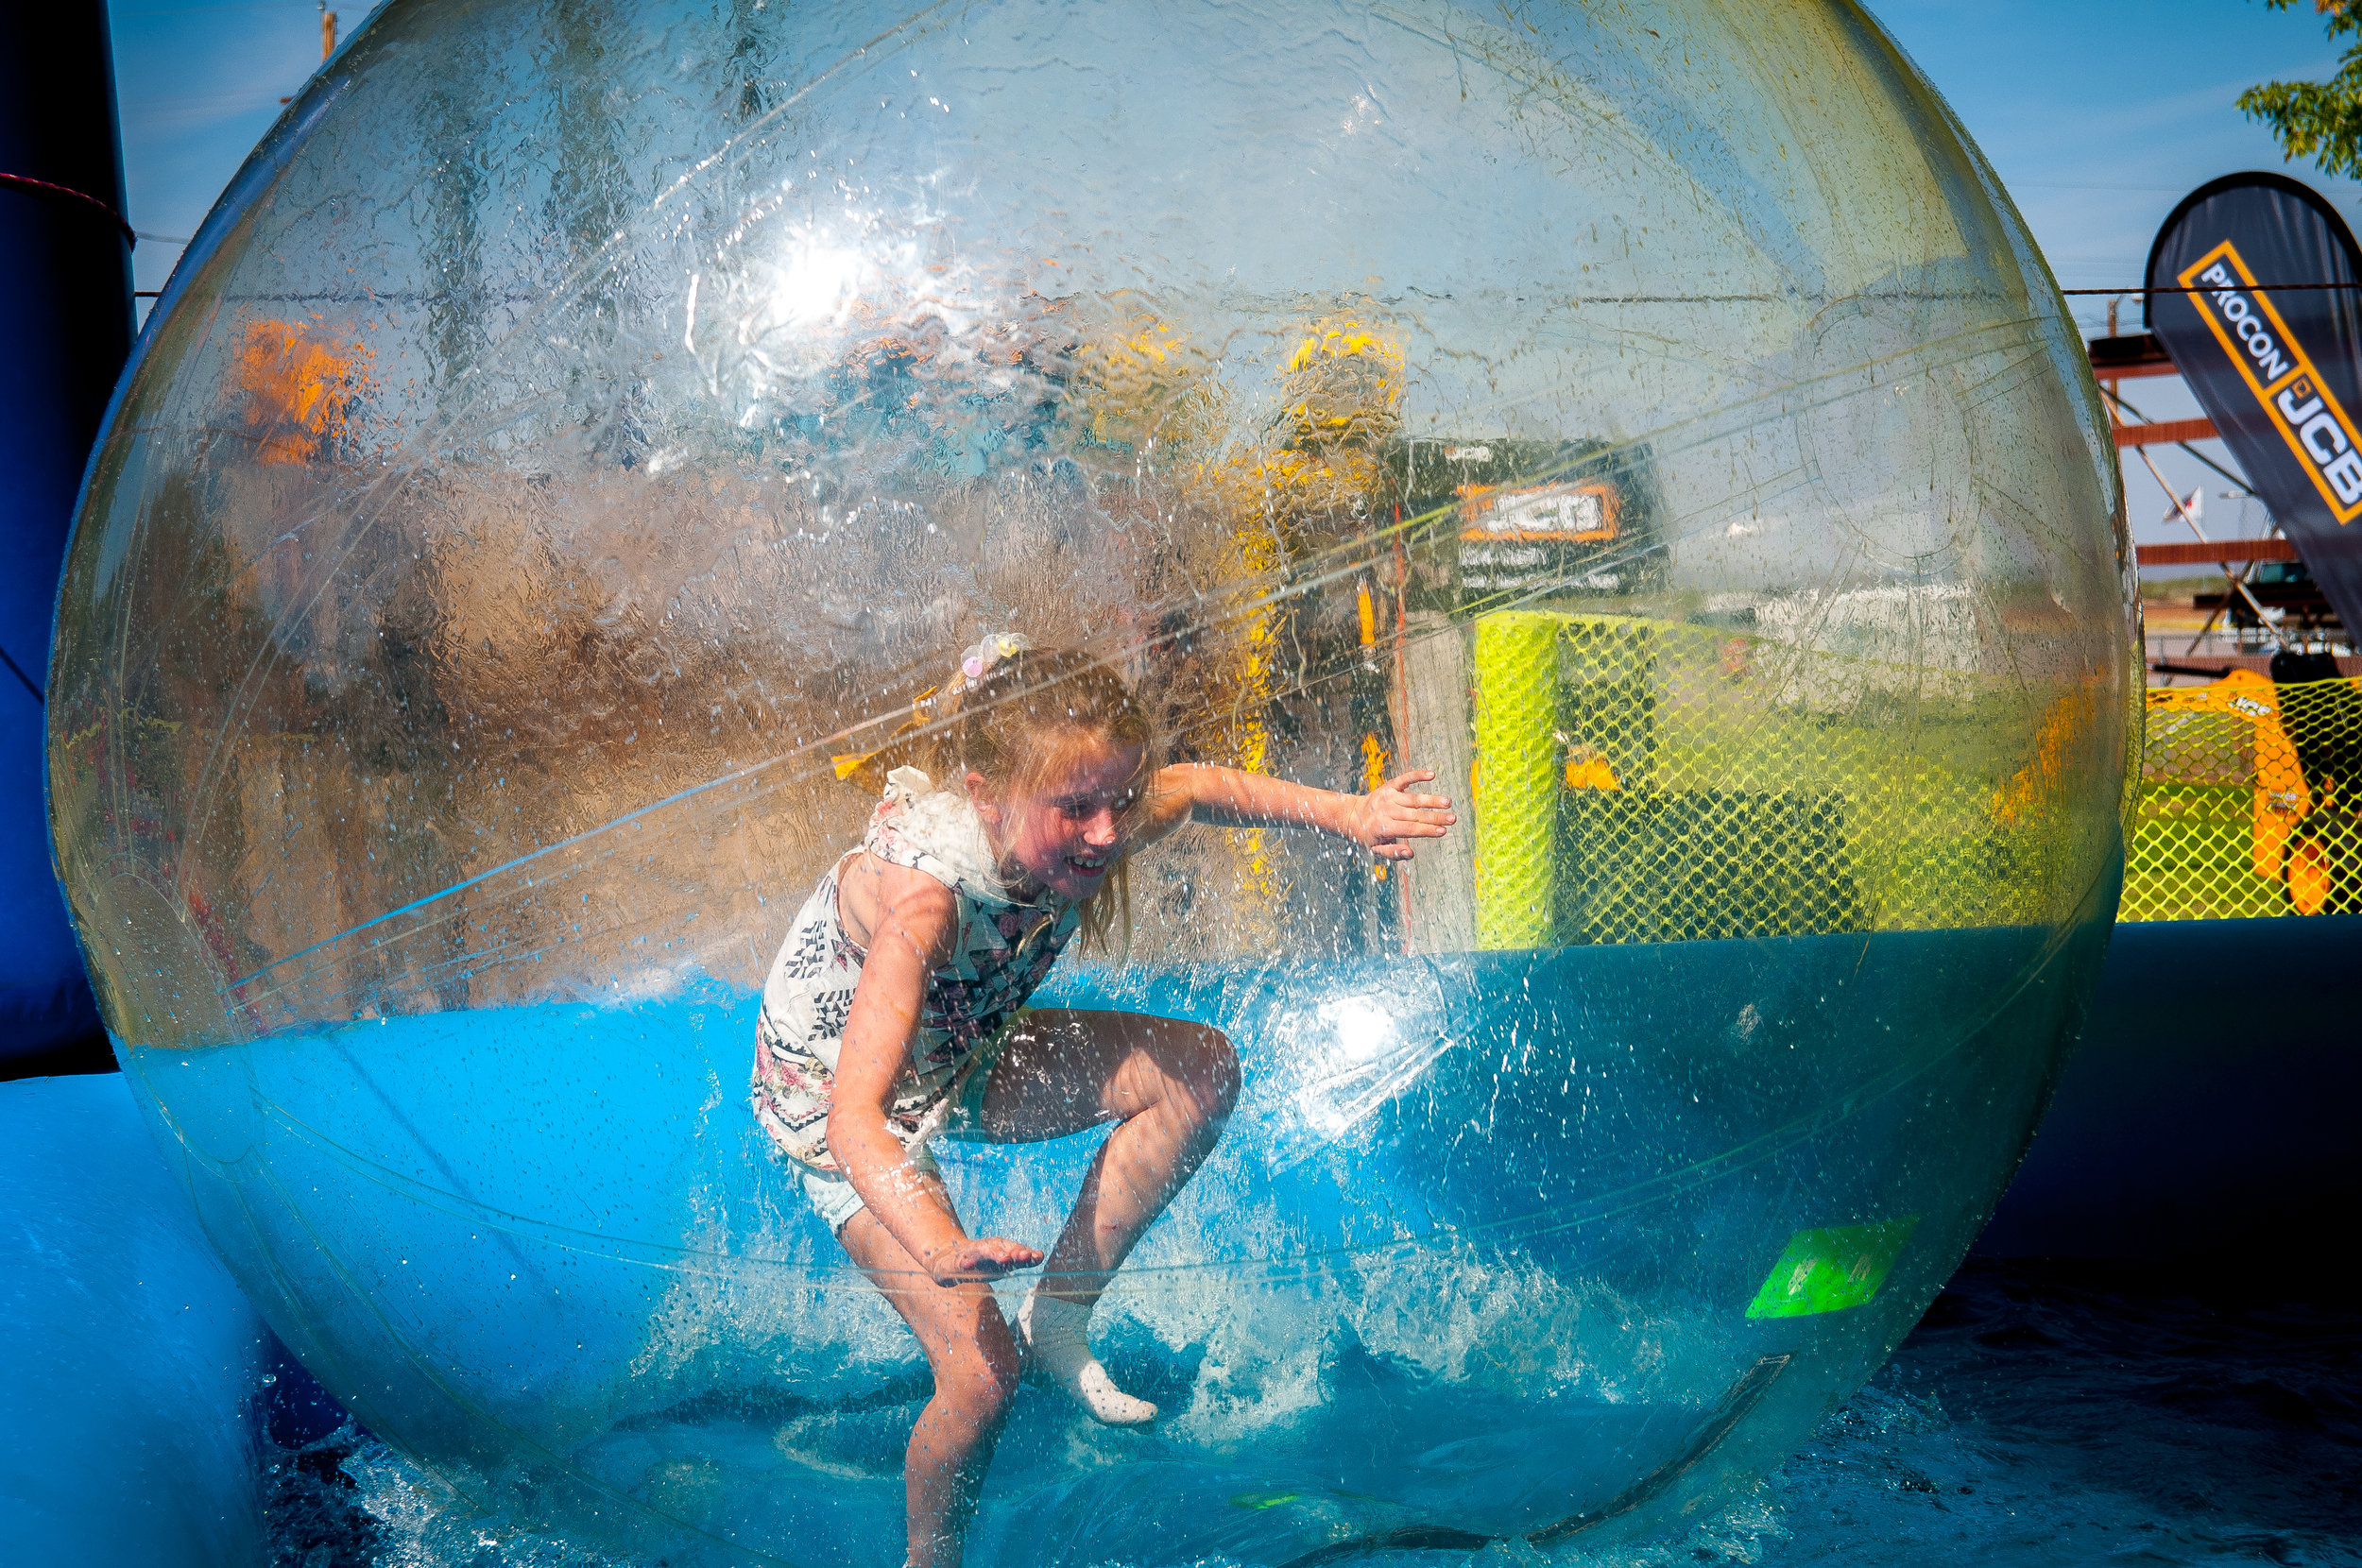 6-year-old Rankin Giraud enjoys herself while rolling in the water at the 'Wow Bubbles' attraction at the 2015 Southern New Mexico State Fair & Rodeo.